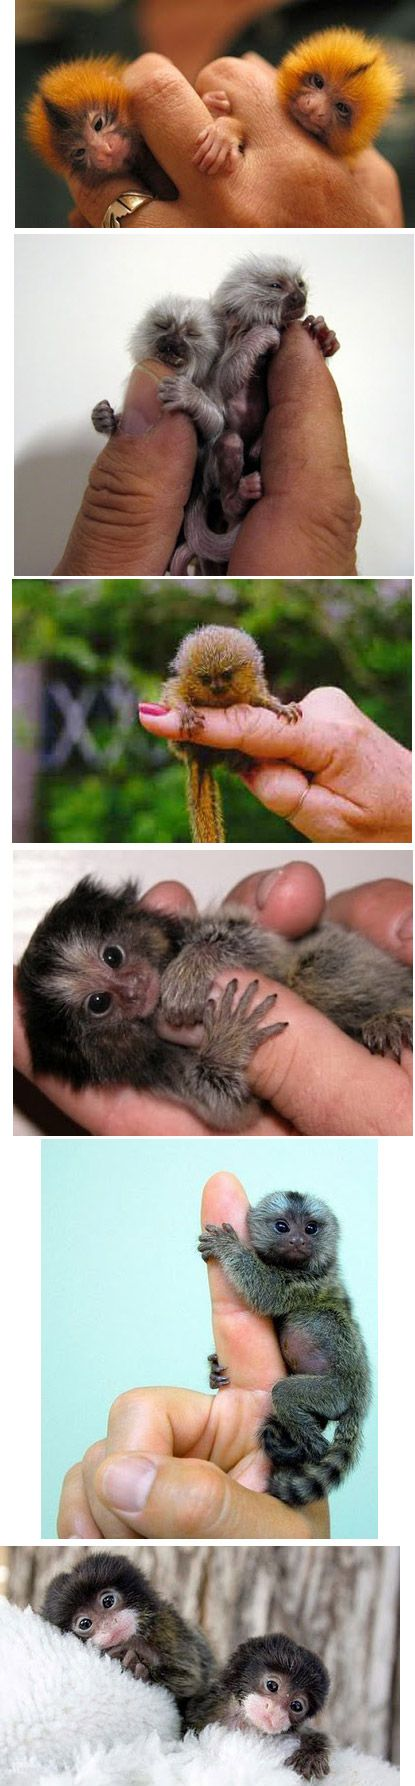 Finger Monkeys from The Rain Forest; One of the cutest things on the planet!